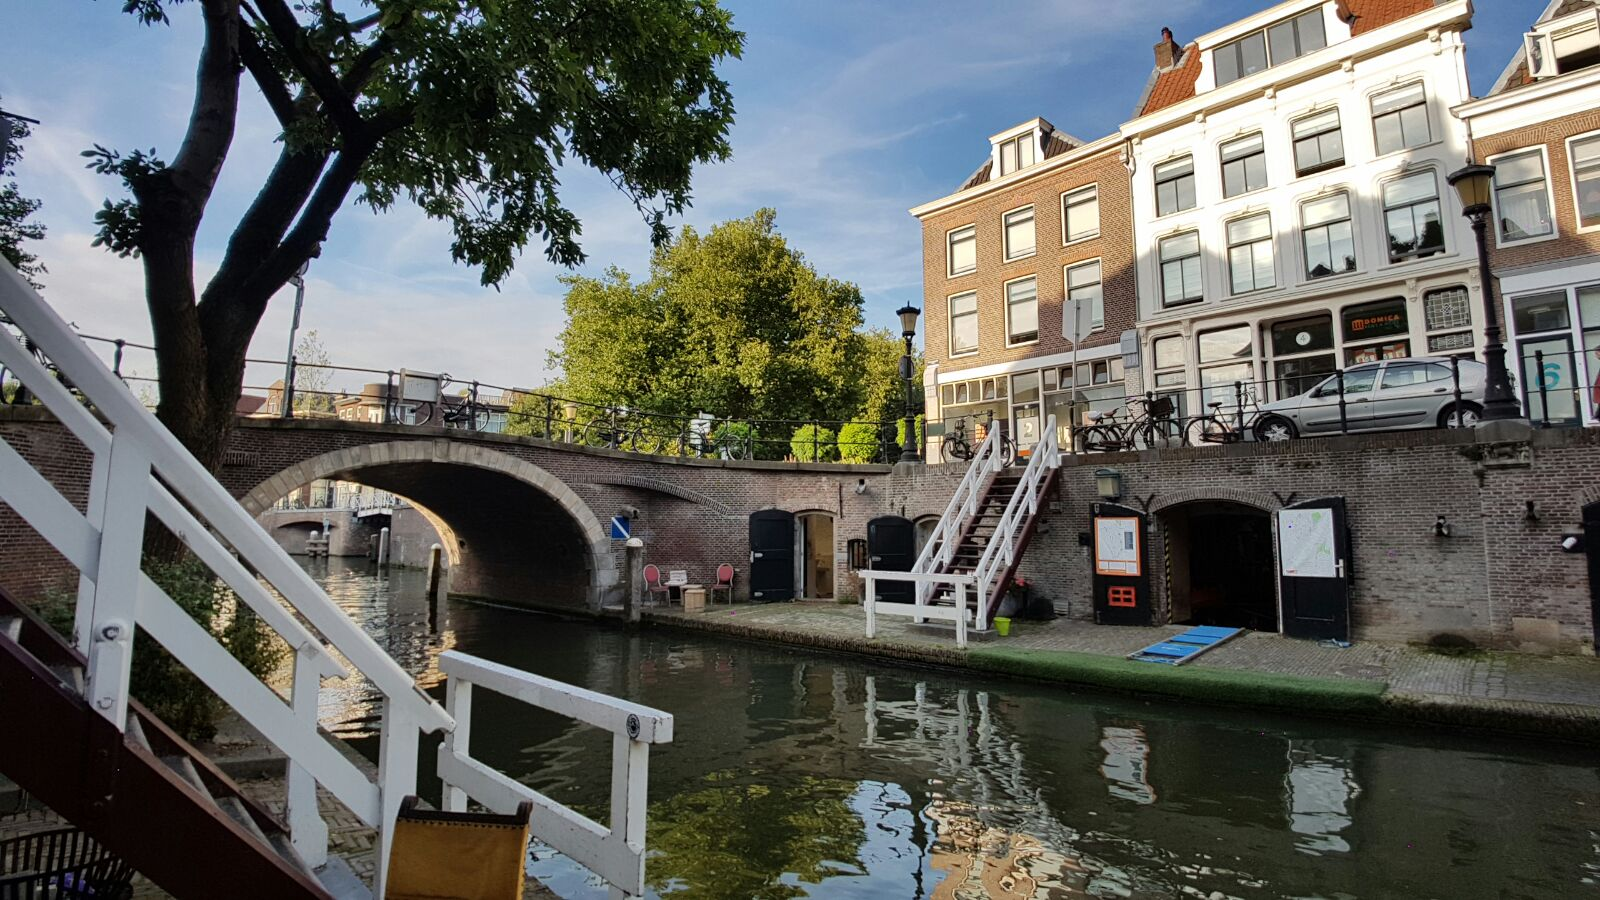 Located in the heart of Utrecht ensures a bustling world around.